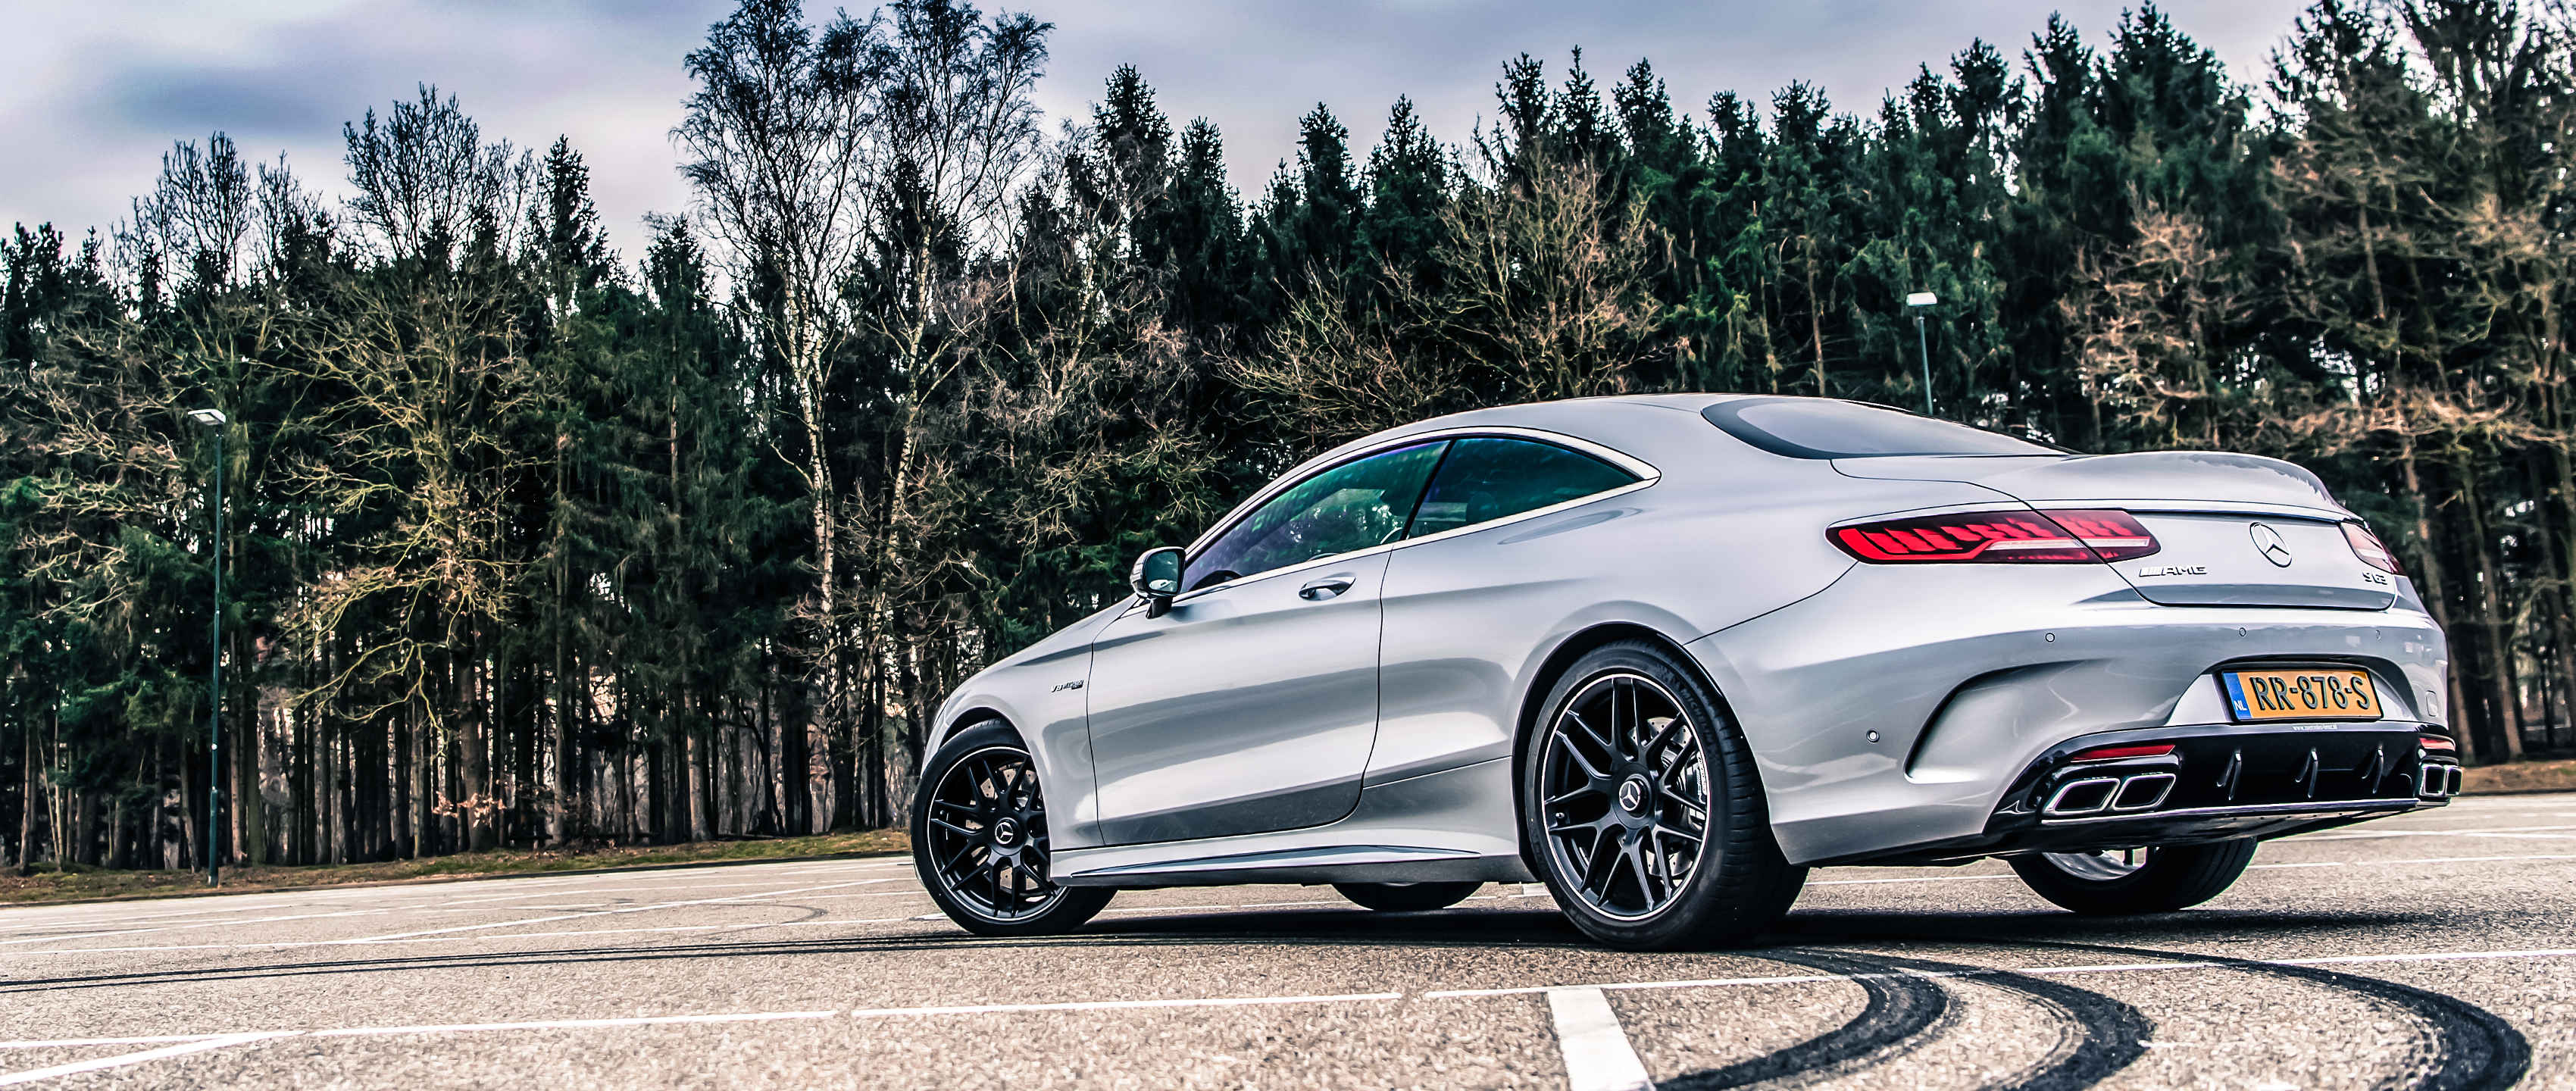 Mercedes Amg S 63 4matic Coupe C 217 In Diamond Silver S63 Amg Coupe Wallpaper 4k 3400x1440 Download Hd Wallpaper Wallpapertip